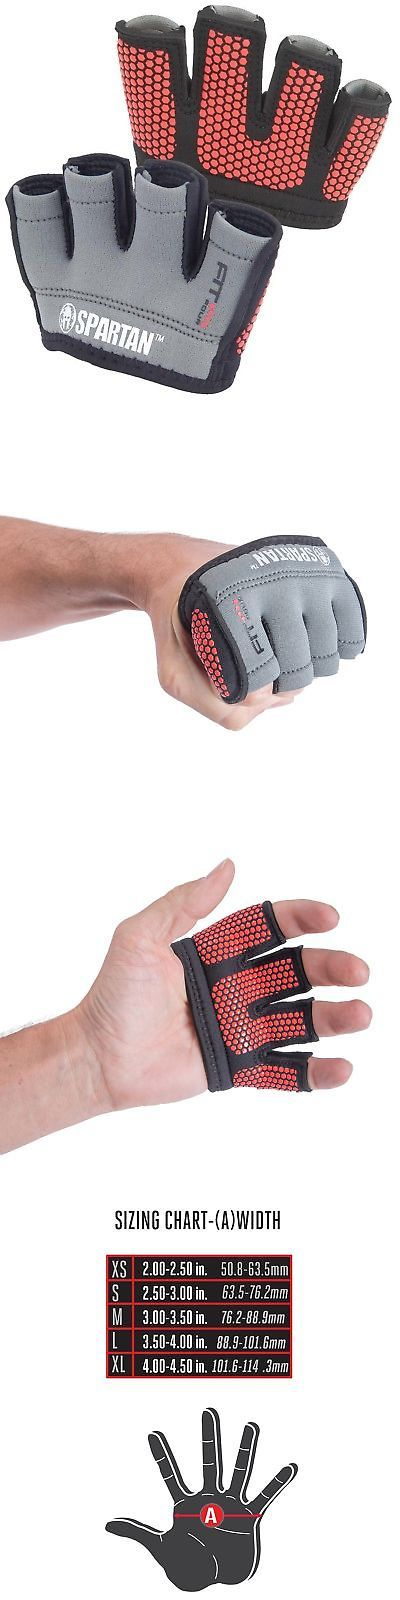 Other Fitness Clothing 158920: Spartan Ocr Neo Grip Gloves By Fit Four   Offical Glove Of Spartan Race   Obs... -> BUY IT NOW ONLY: $35.25 on eBay!